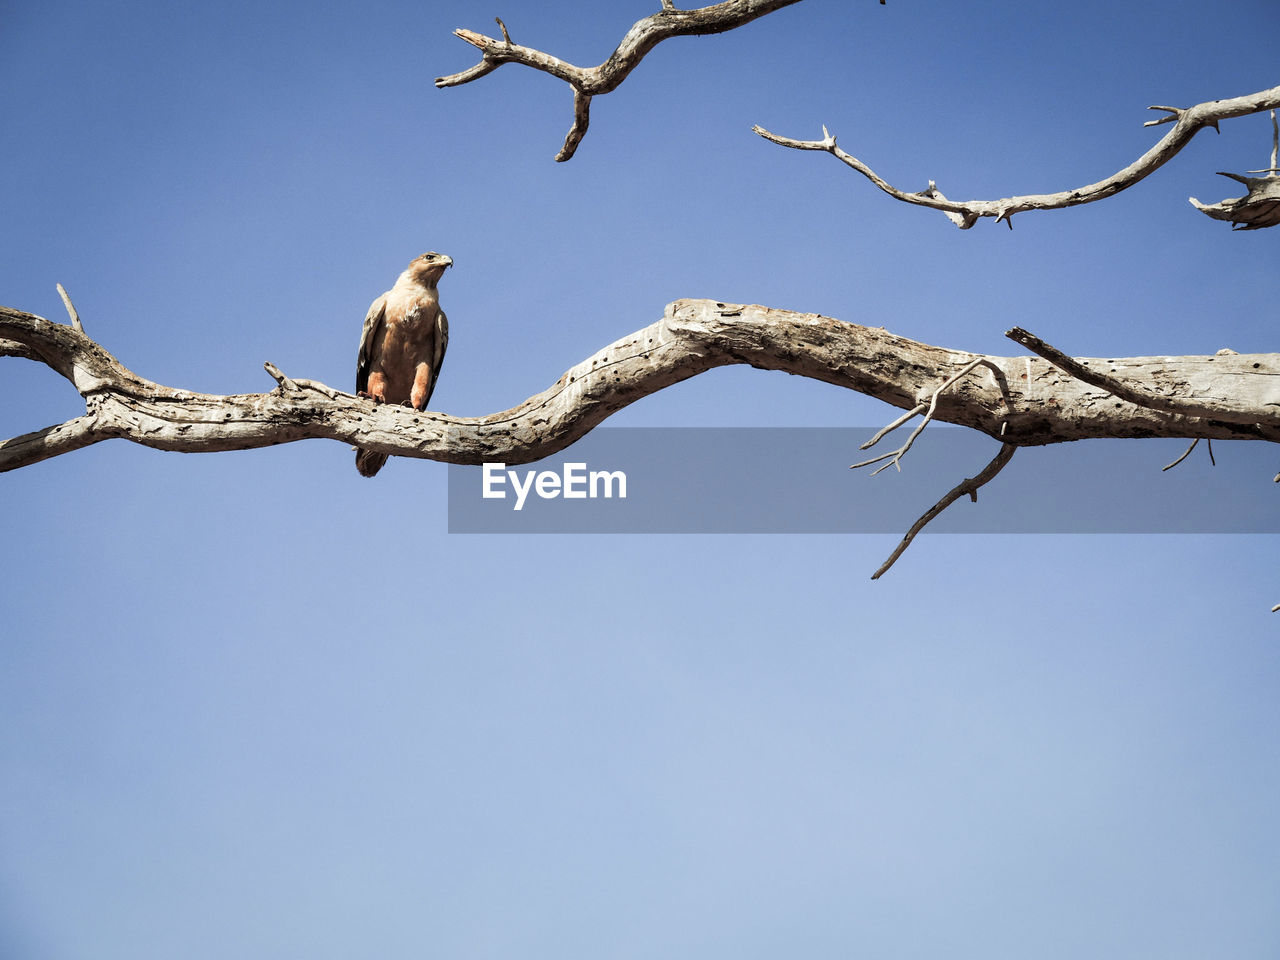 bird, animals in the wild, animal themes, perching, animal wildlife, clear sky, low angle view, day, one animal, copy space, outdoors, branch, no people, nature, blue, bird of prey, tree, mourning dove, bare tree, sky, beauty in nature